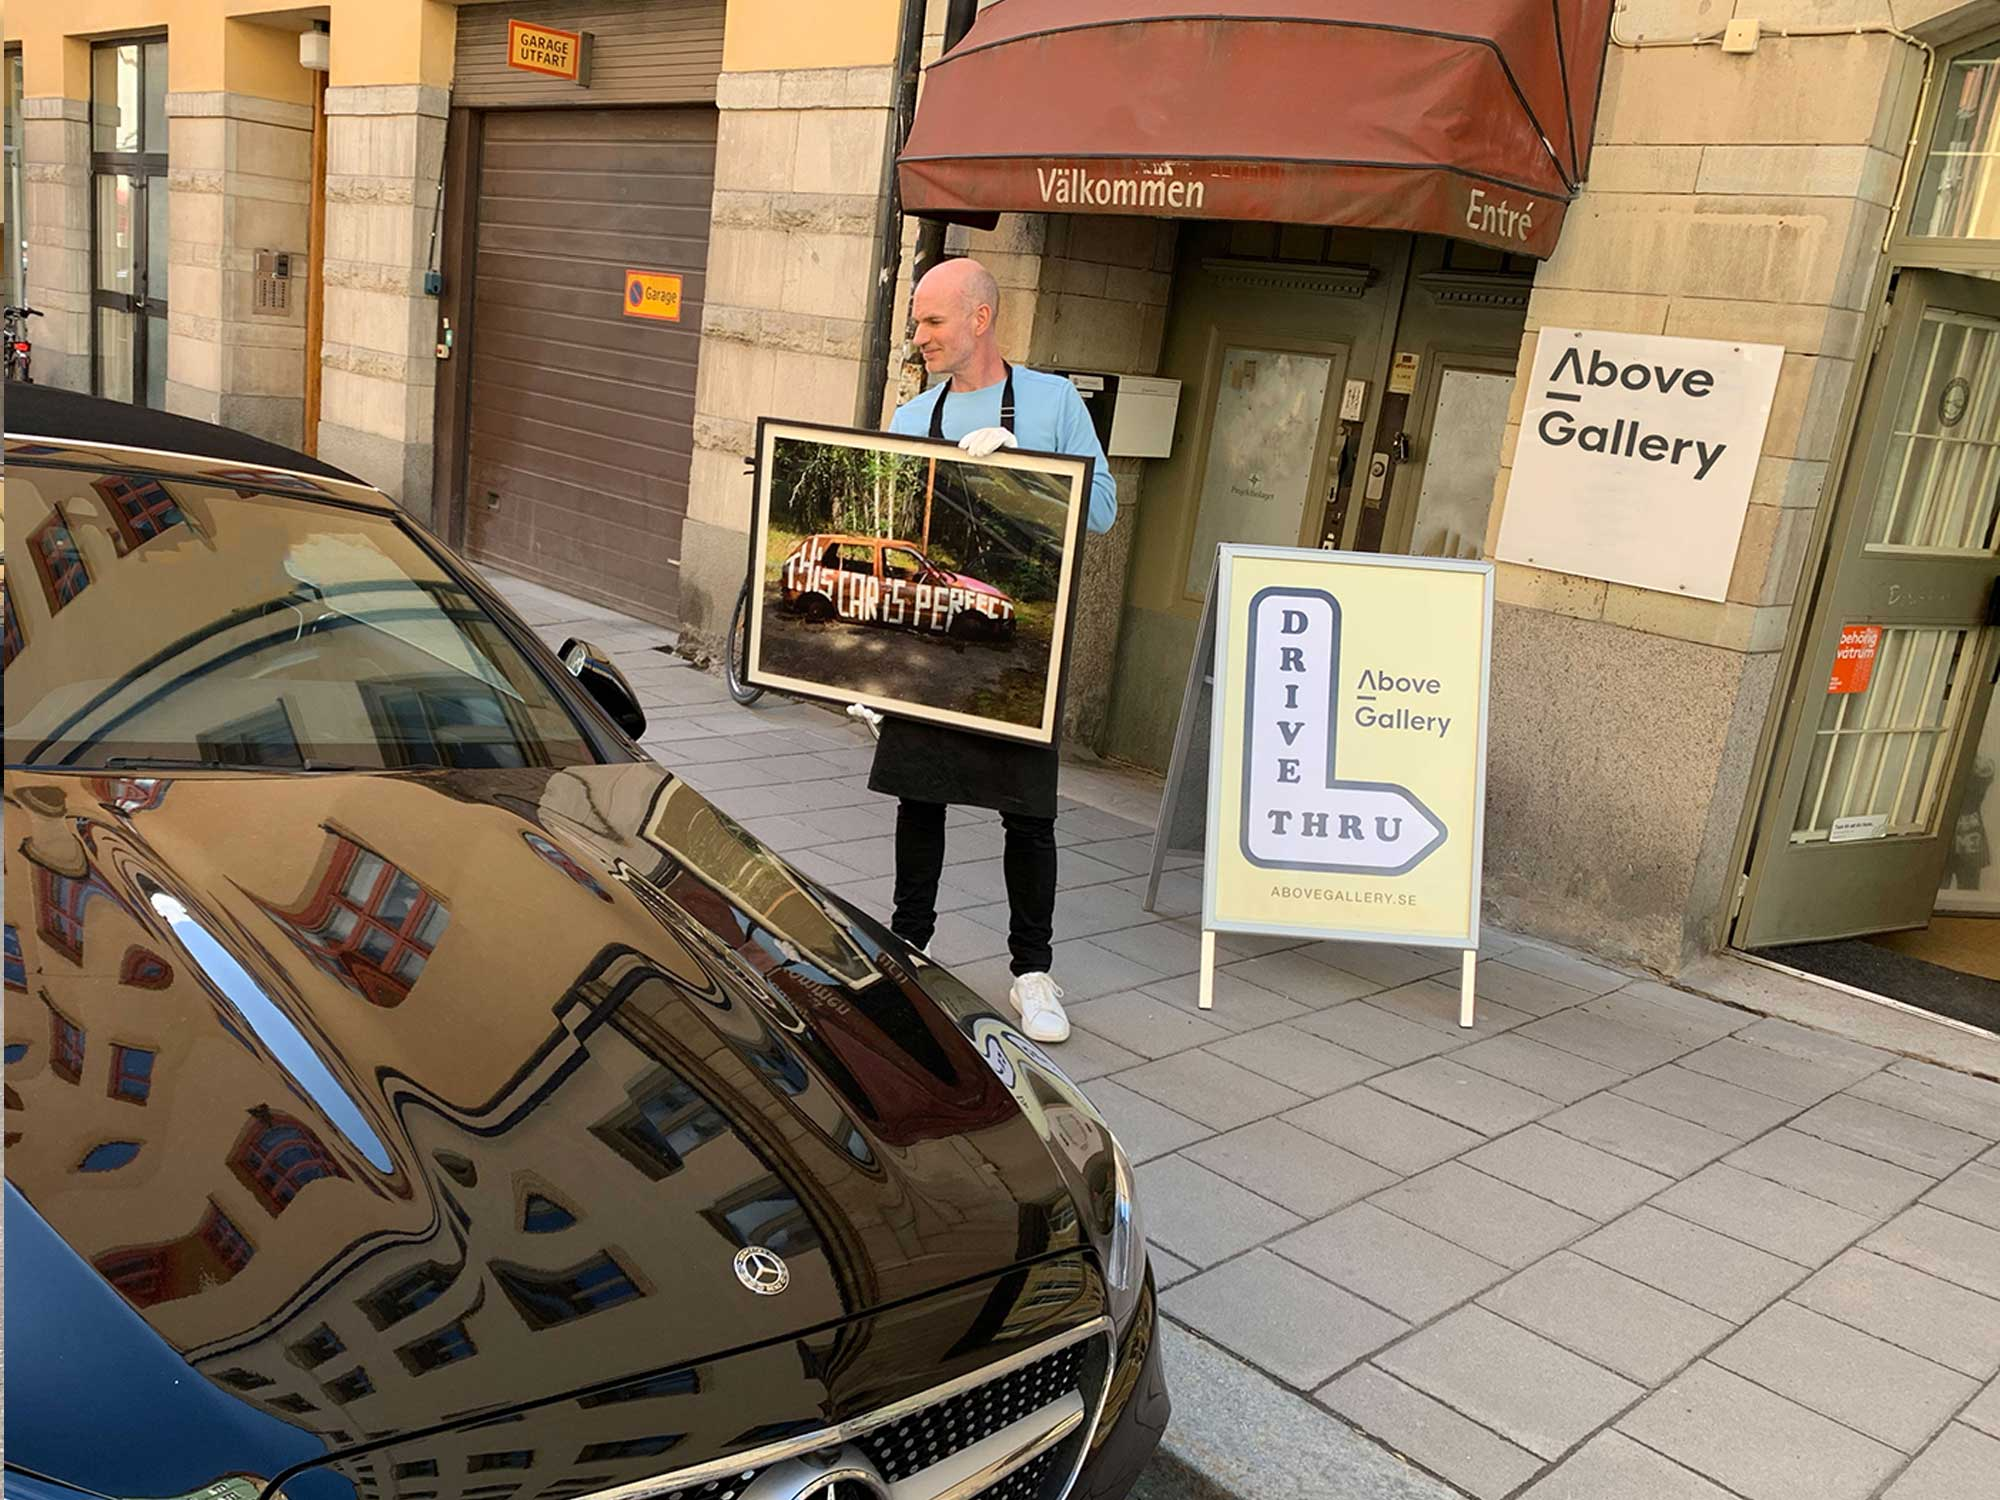 Above Gallery presents Sweden's first gallery with Drive-thru service